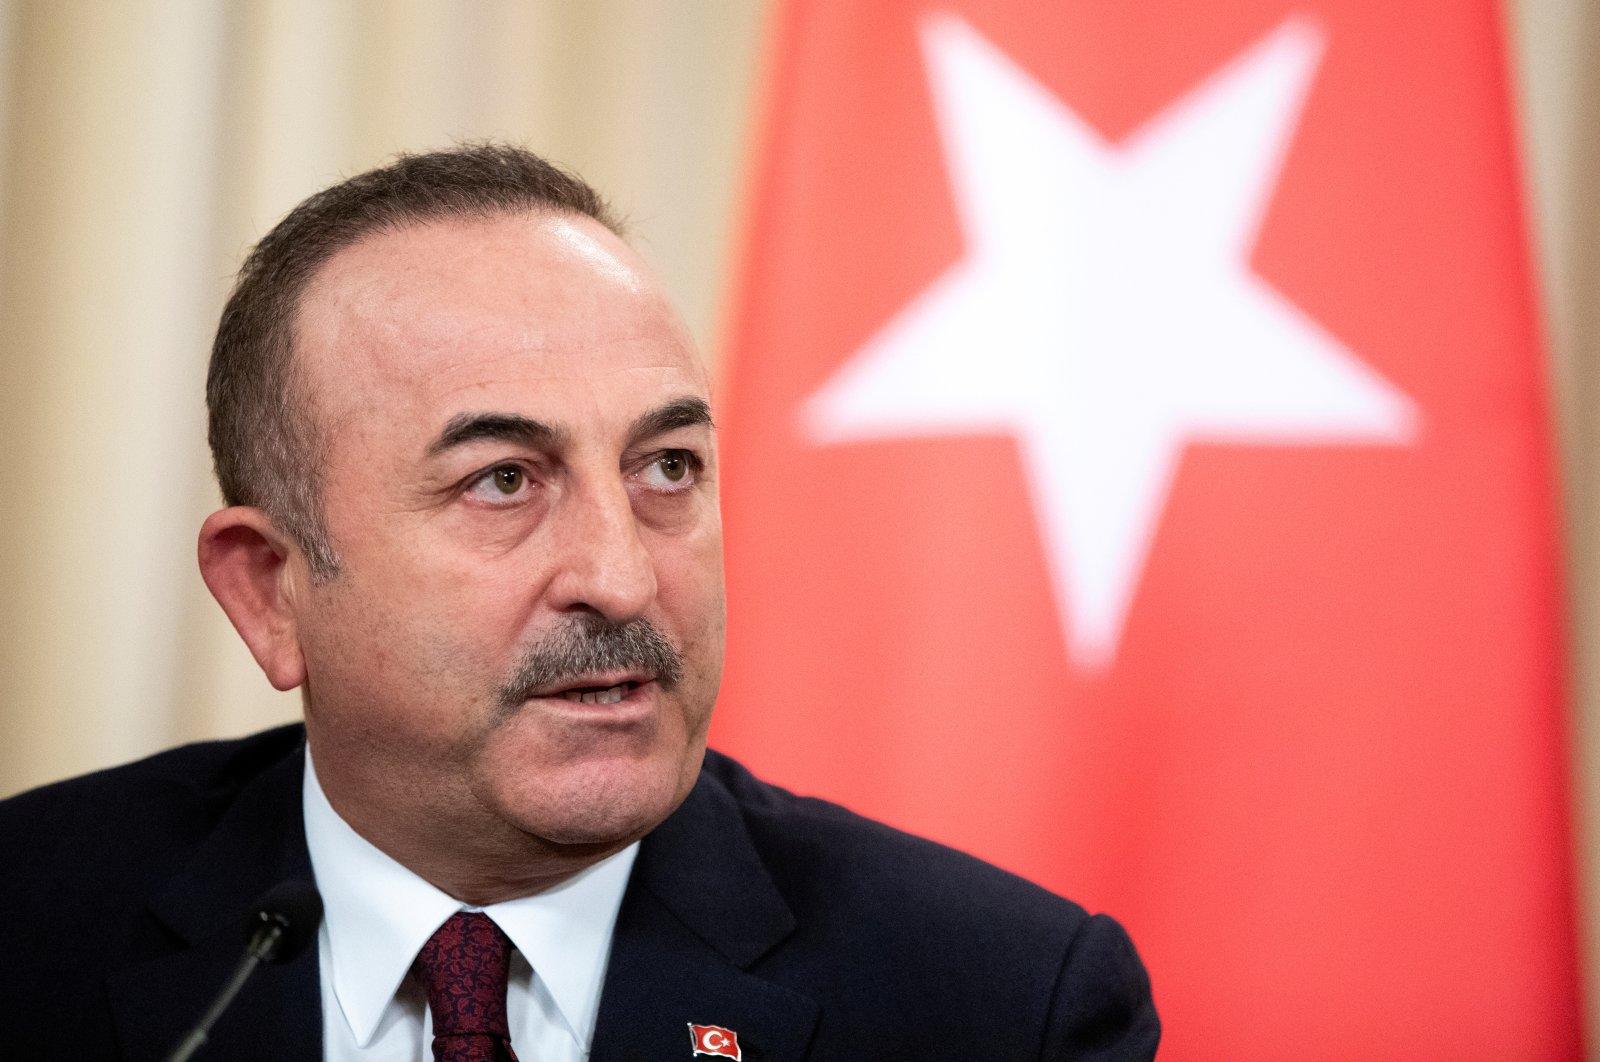 Foreign Minister Mevlüt Çavuşoğlu speaks during a joint news conference following talks with Russian Foreign Minister Sergei Lavrov in Moscow, Russia, January 13, 2020. (REUTERS Photo)